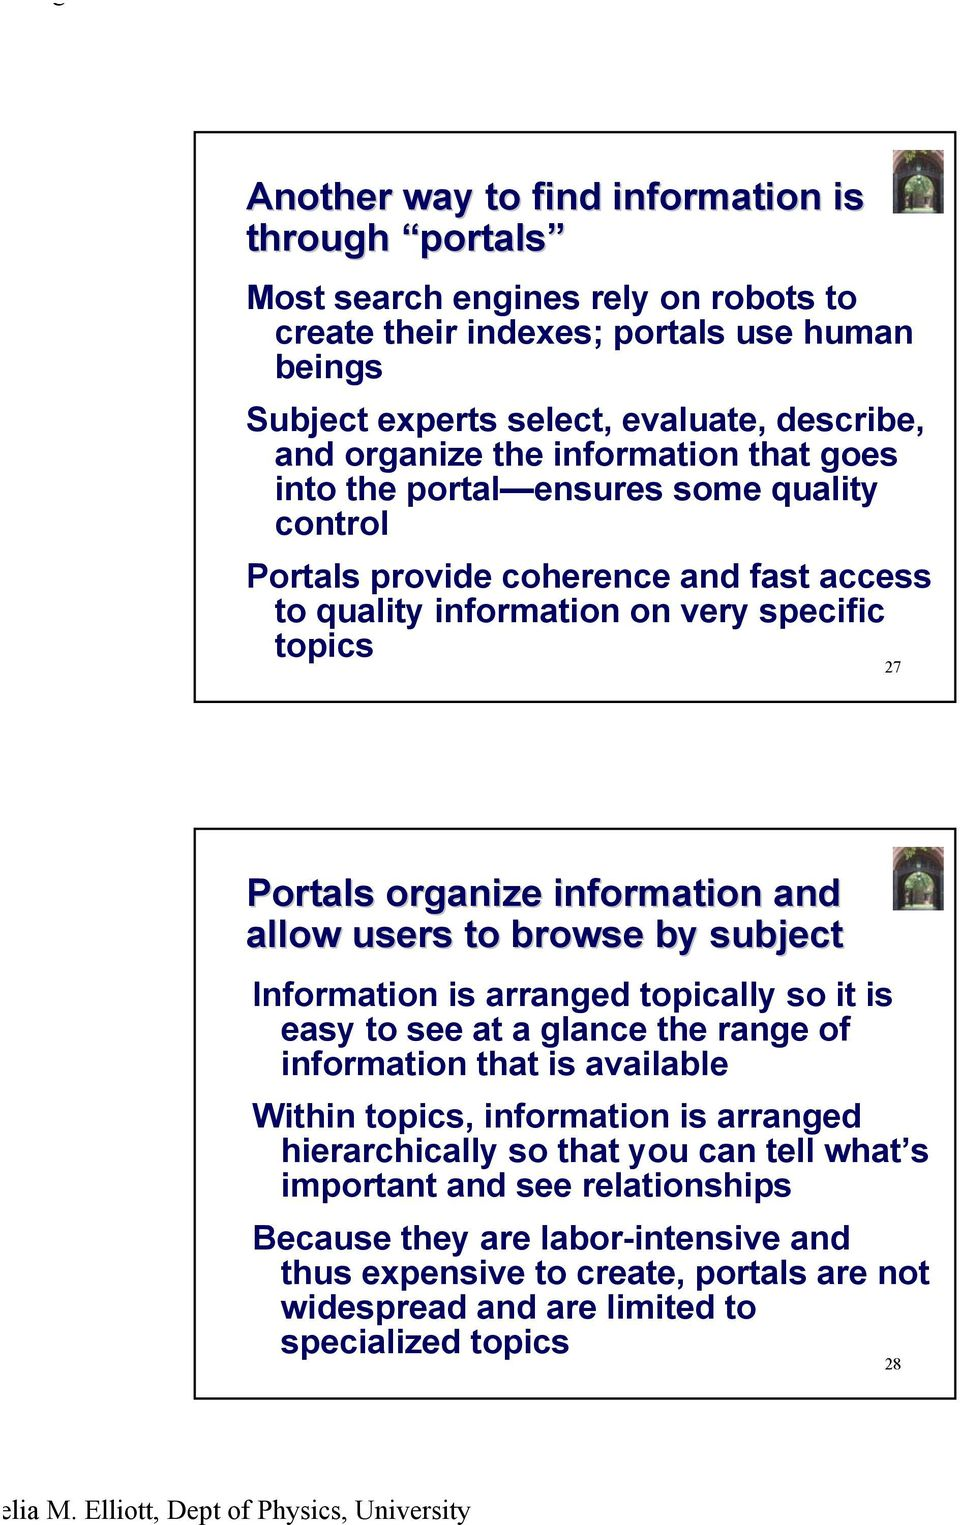 and allow users to browse by subject Information is arranged topically so it is easy to see at a glance the range of information that is available Within topics, information is arranged